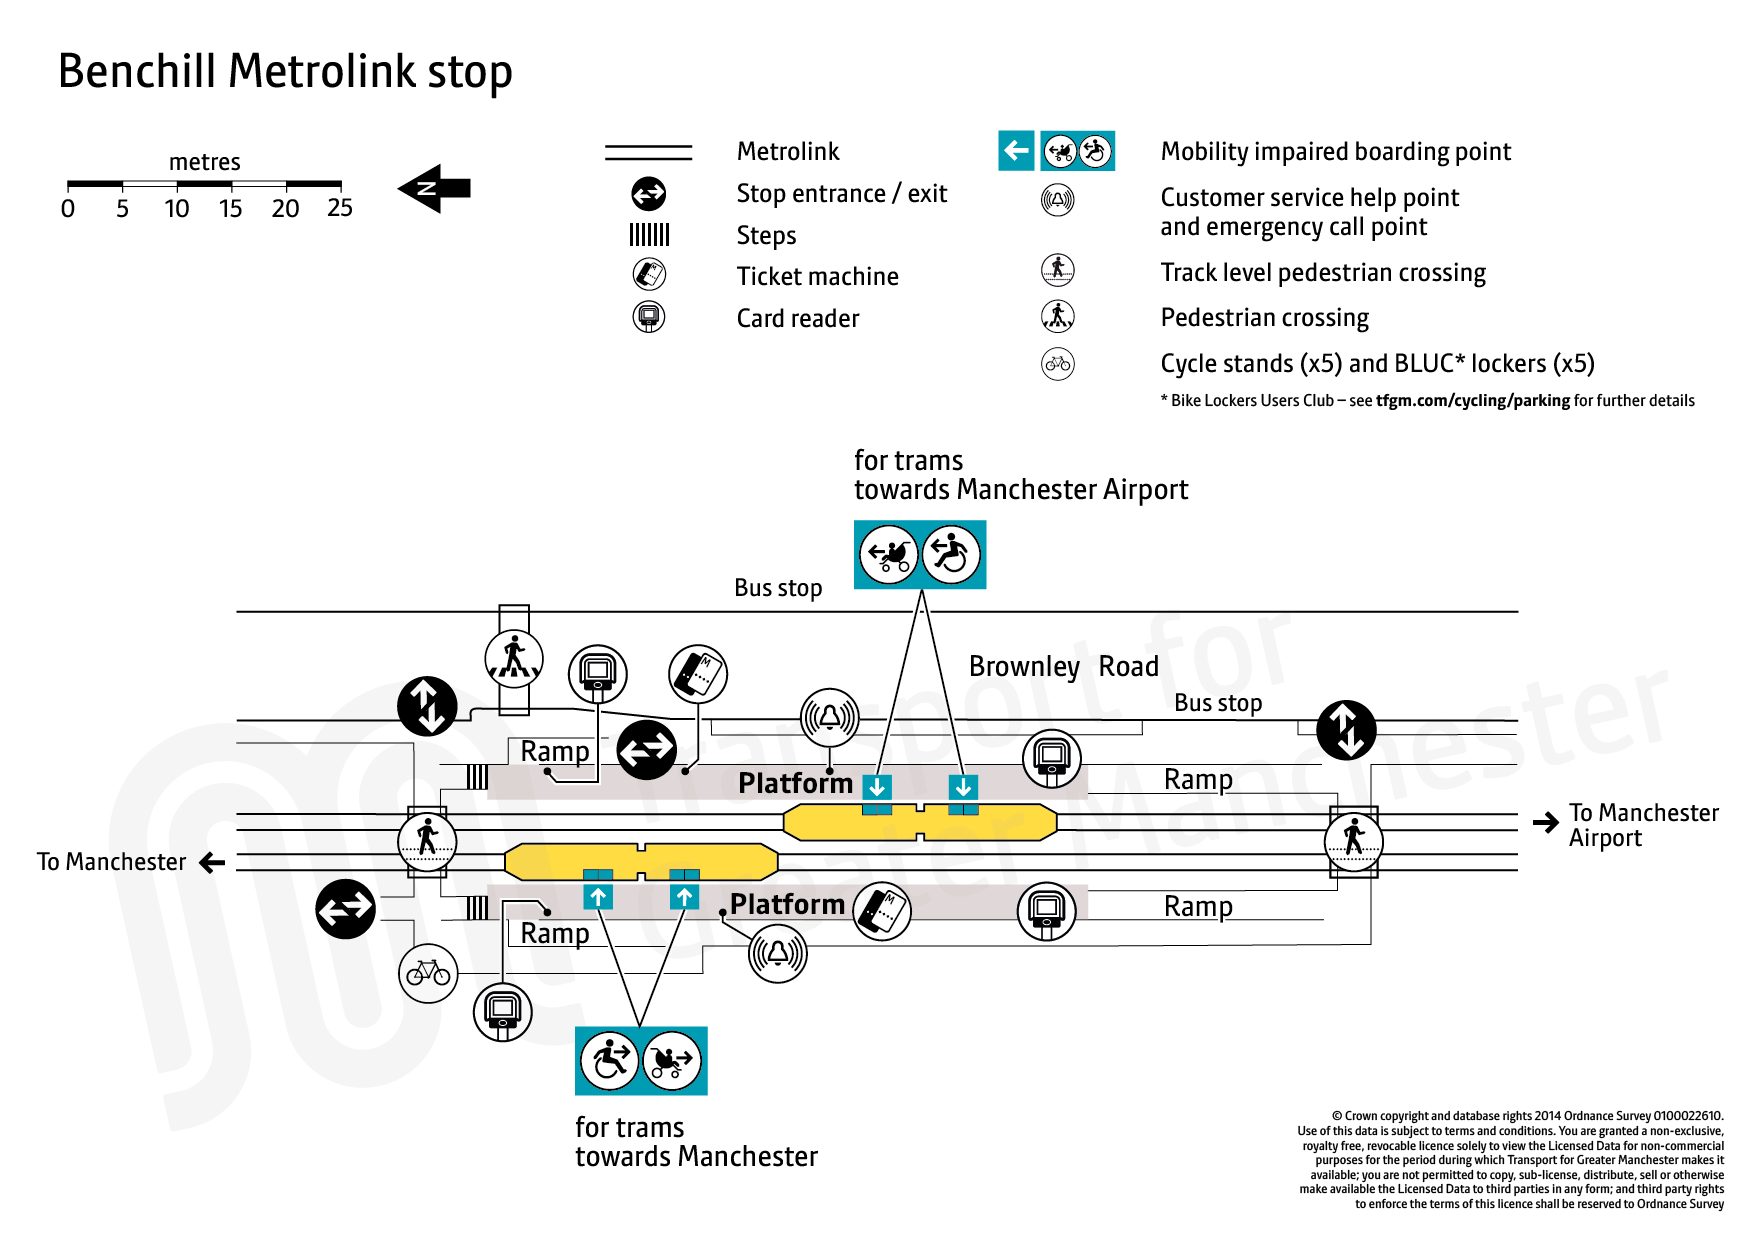 Stop map for Benchill tram stop